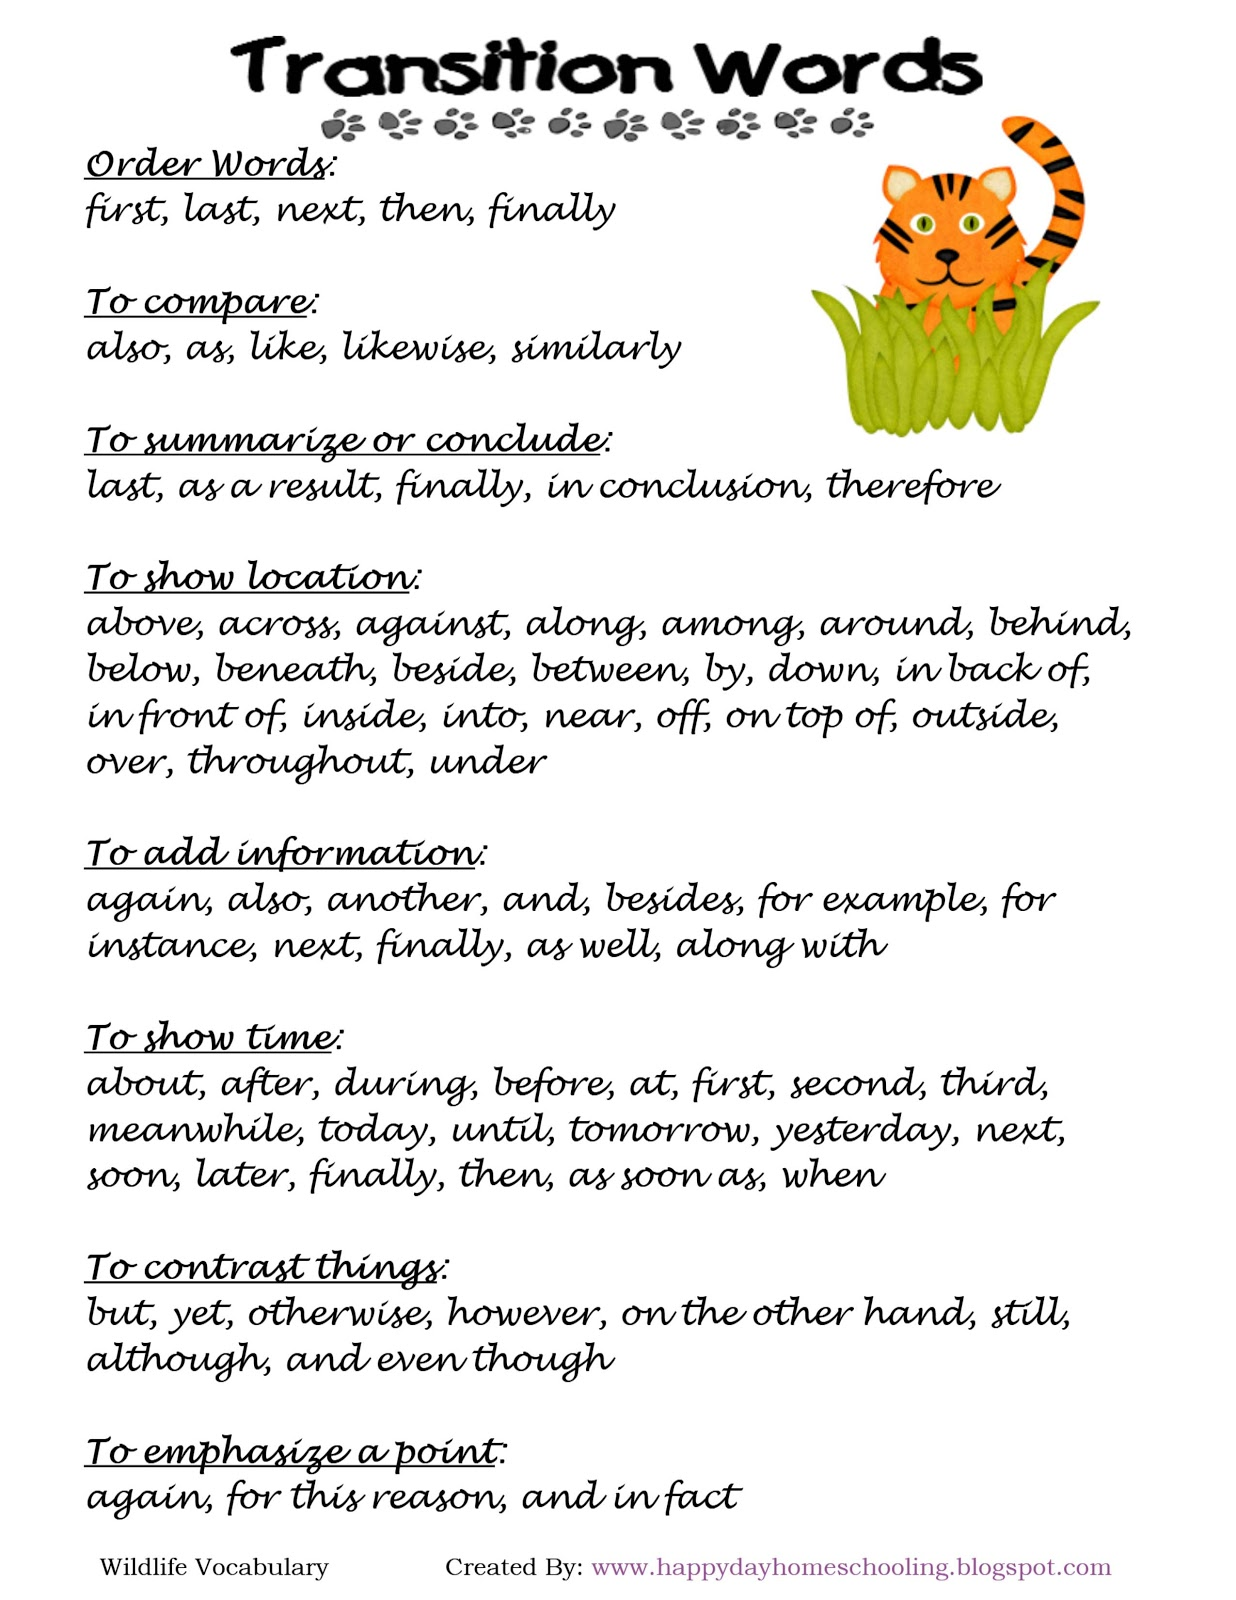 List Of Transition Words For Kids